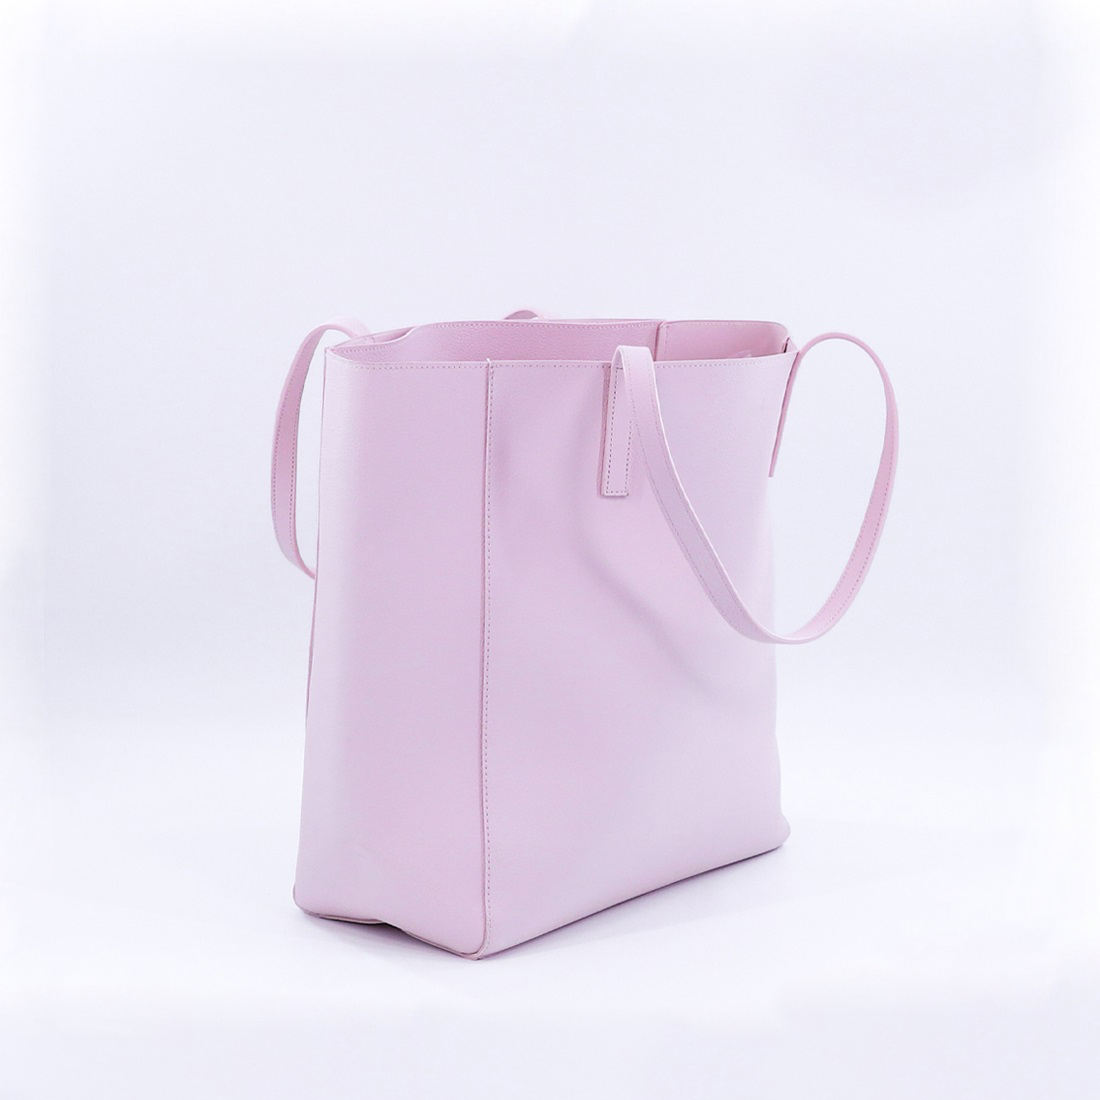 New Product Luxury Ladies Customized Totes Simple Pink PU Leather Handbags for Women